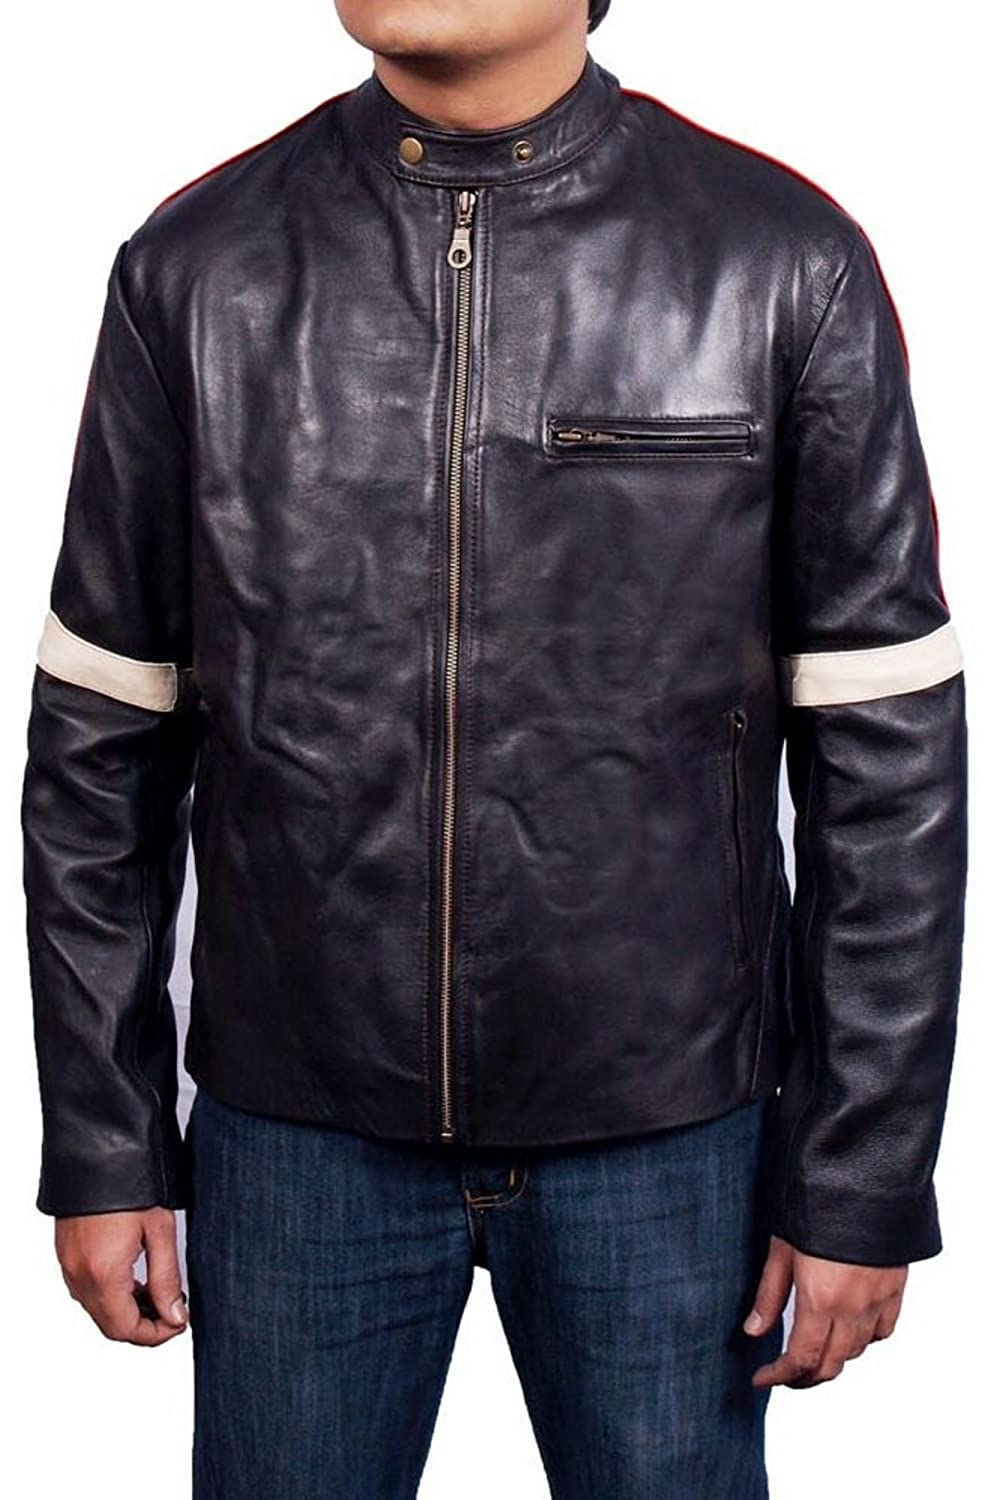 Men's War Of The World Sheep Coffee brown Leather Jacket